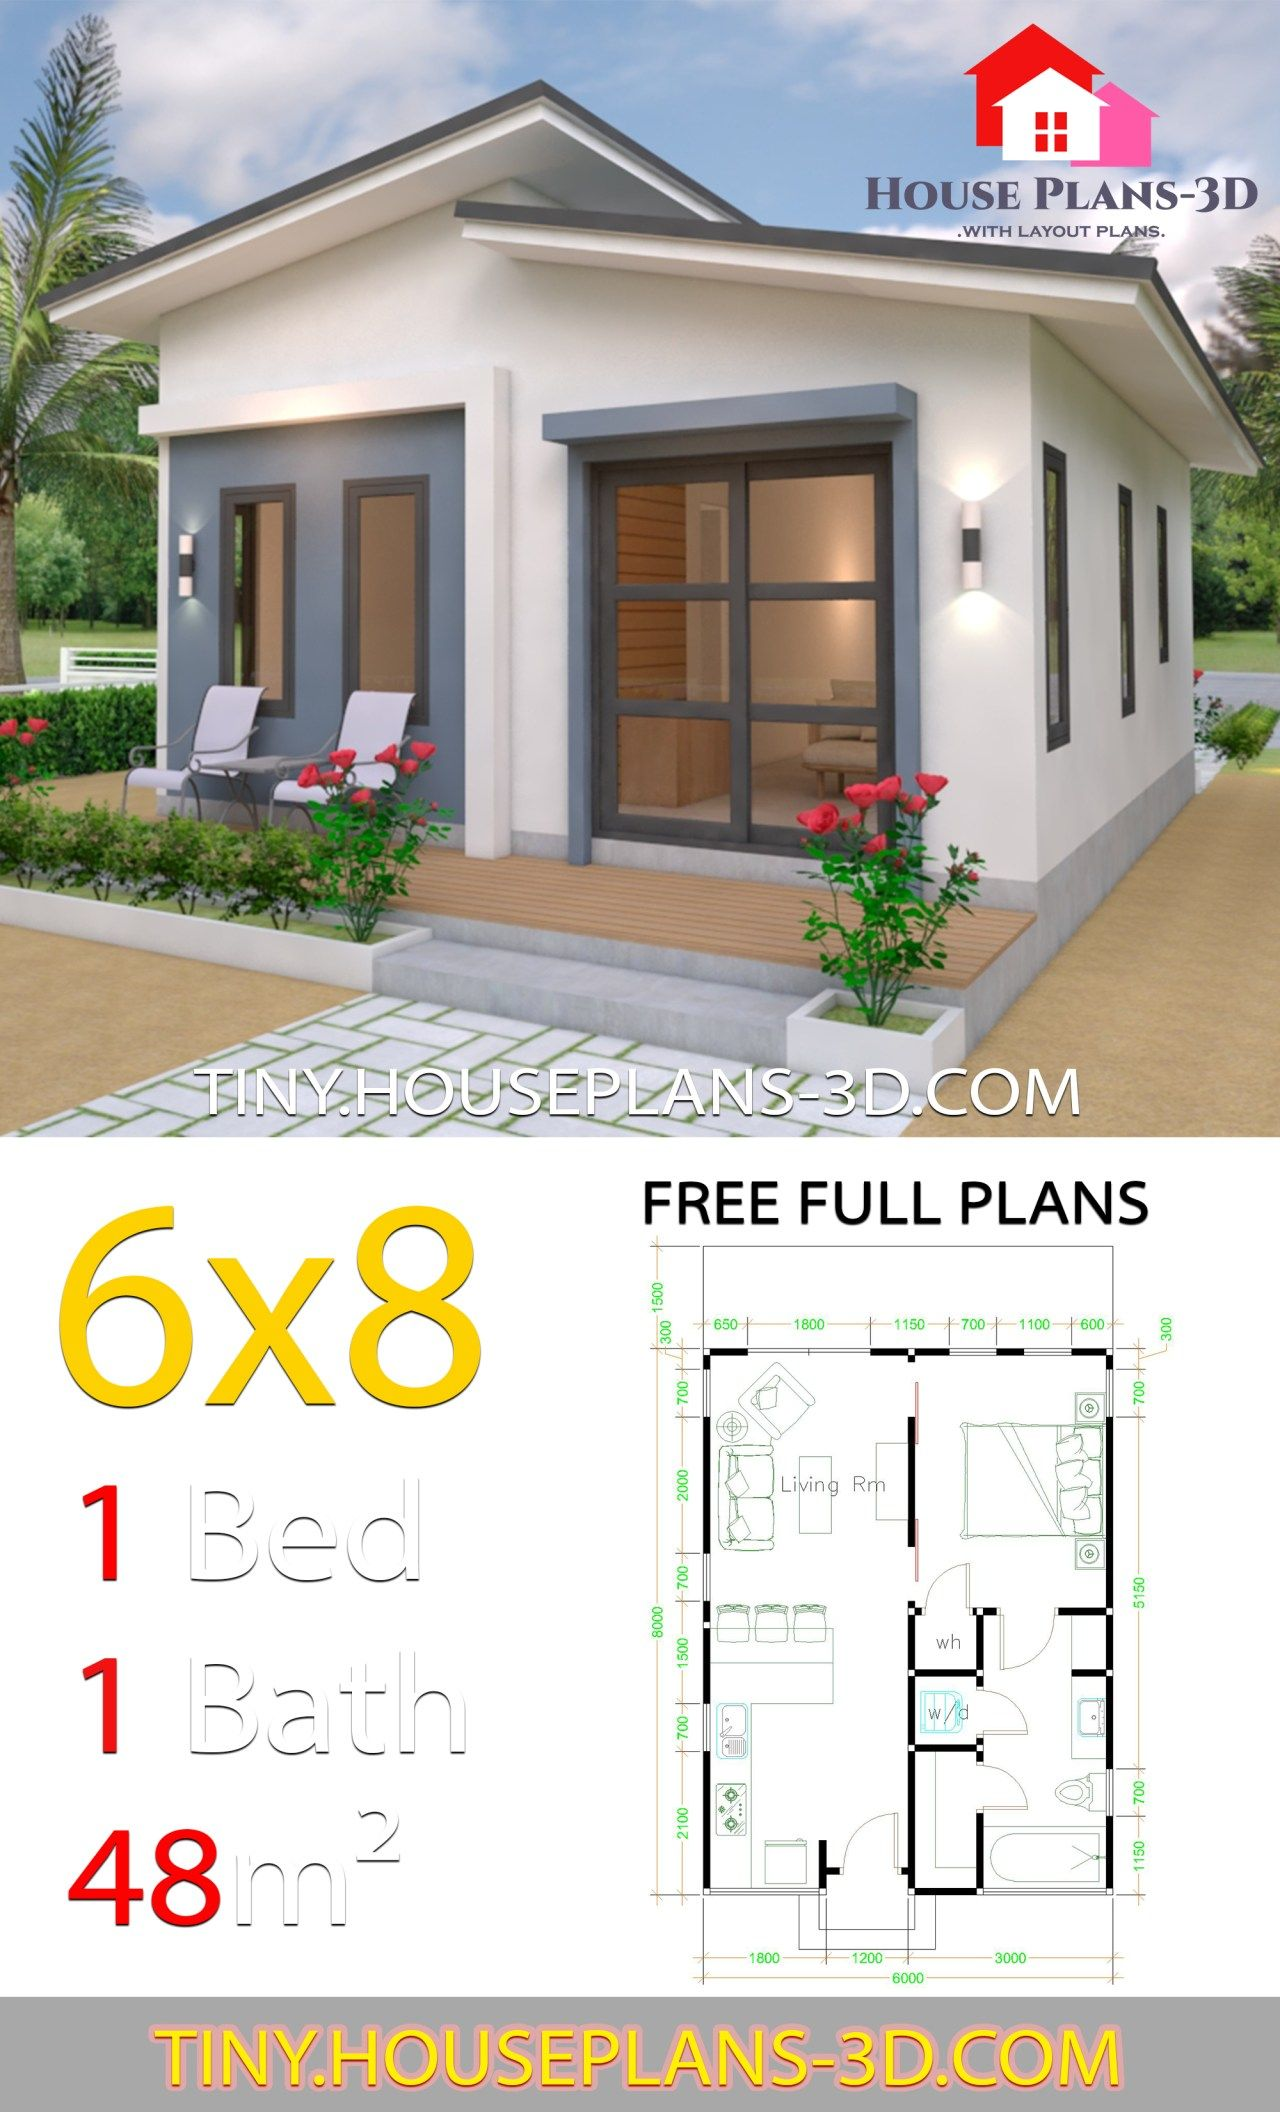 Studio House Plans 6x8 Shed Roof In 2020 Tiny House Plans Tiny House Floor Plans Small House Design